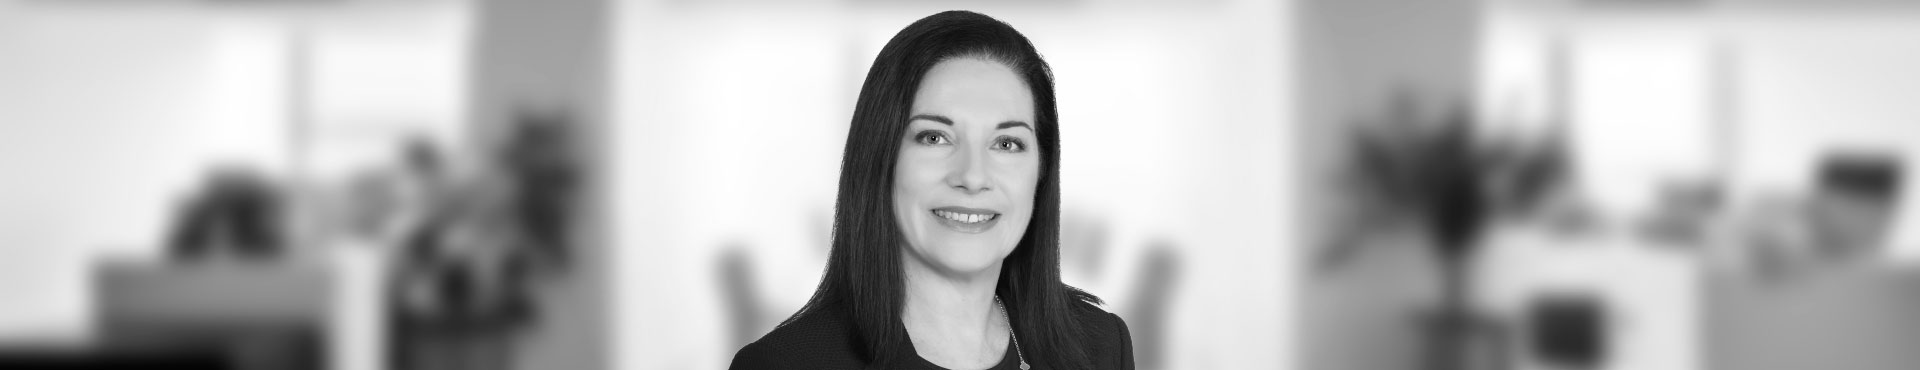 Annette O'Hara | Shine Lawyers